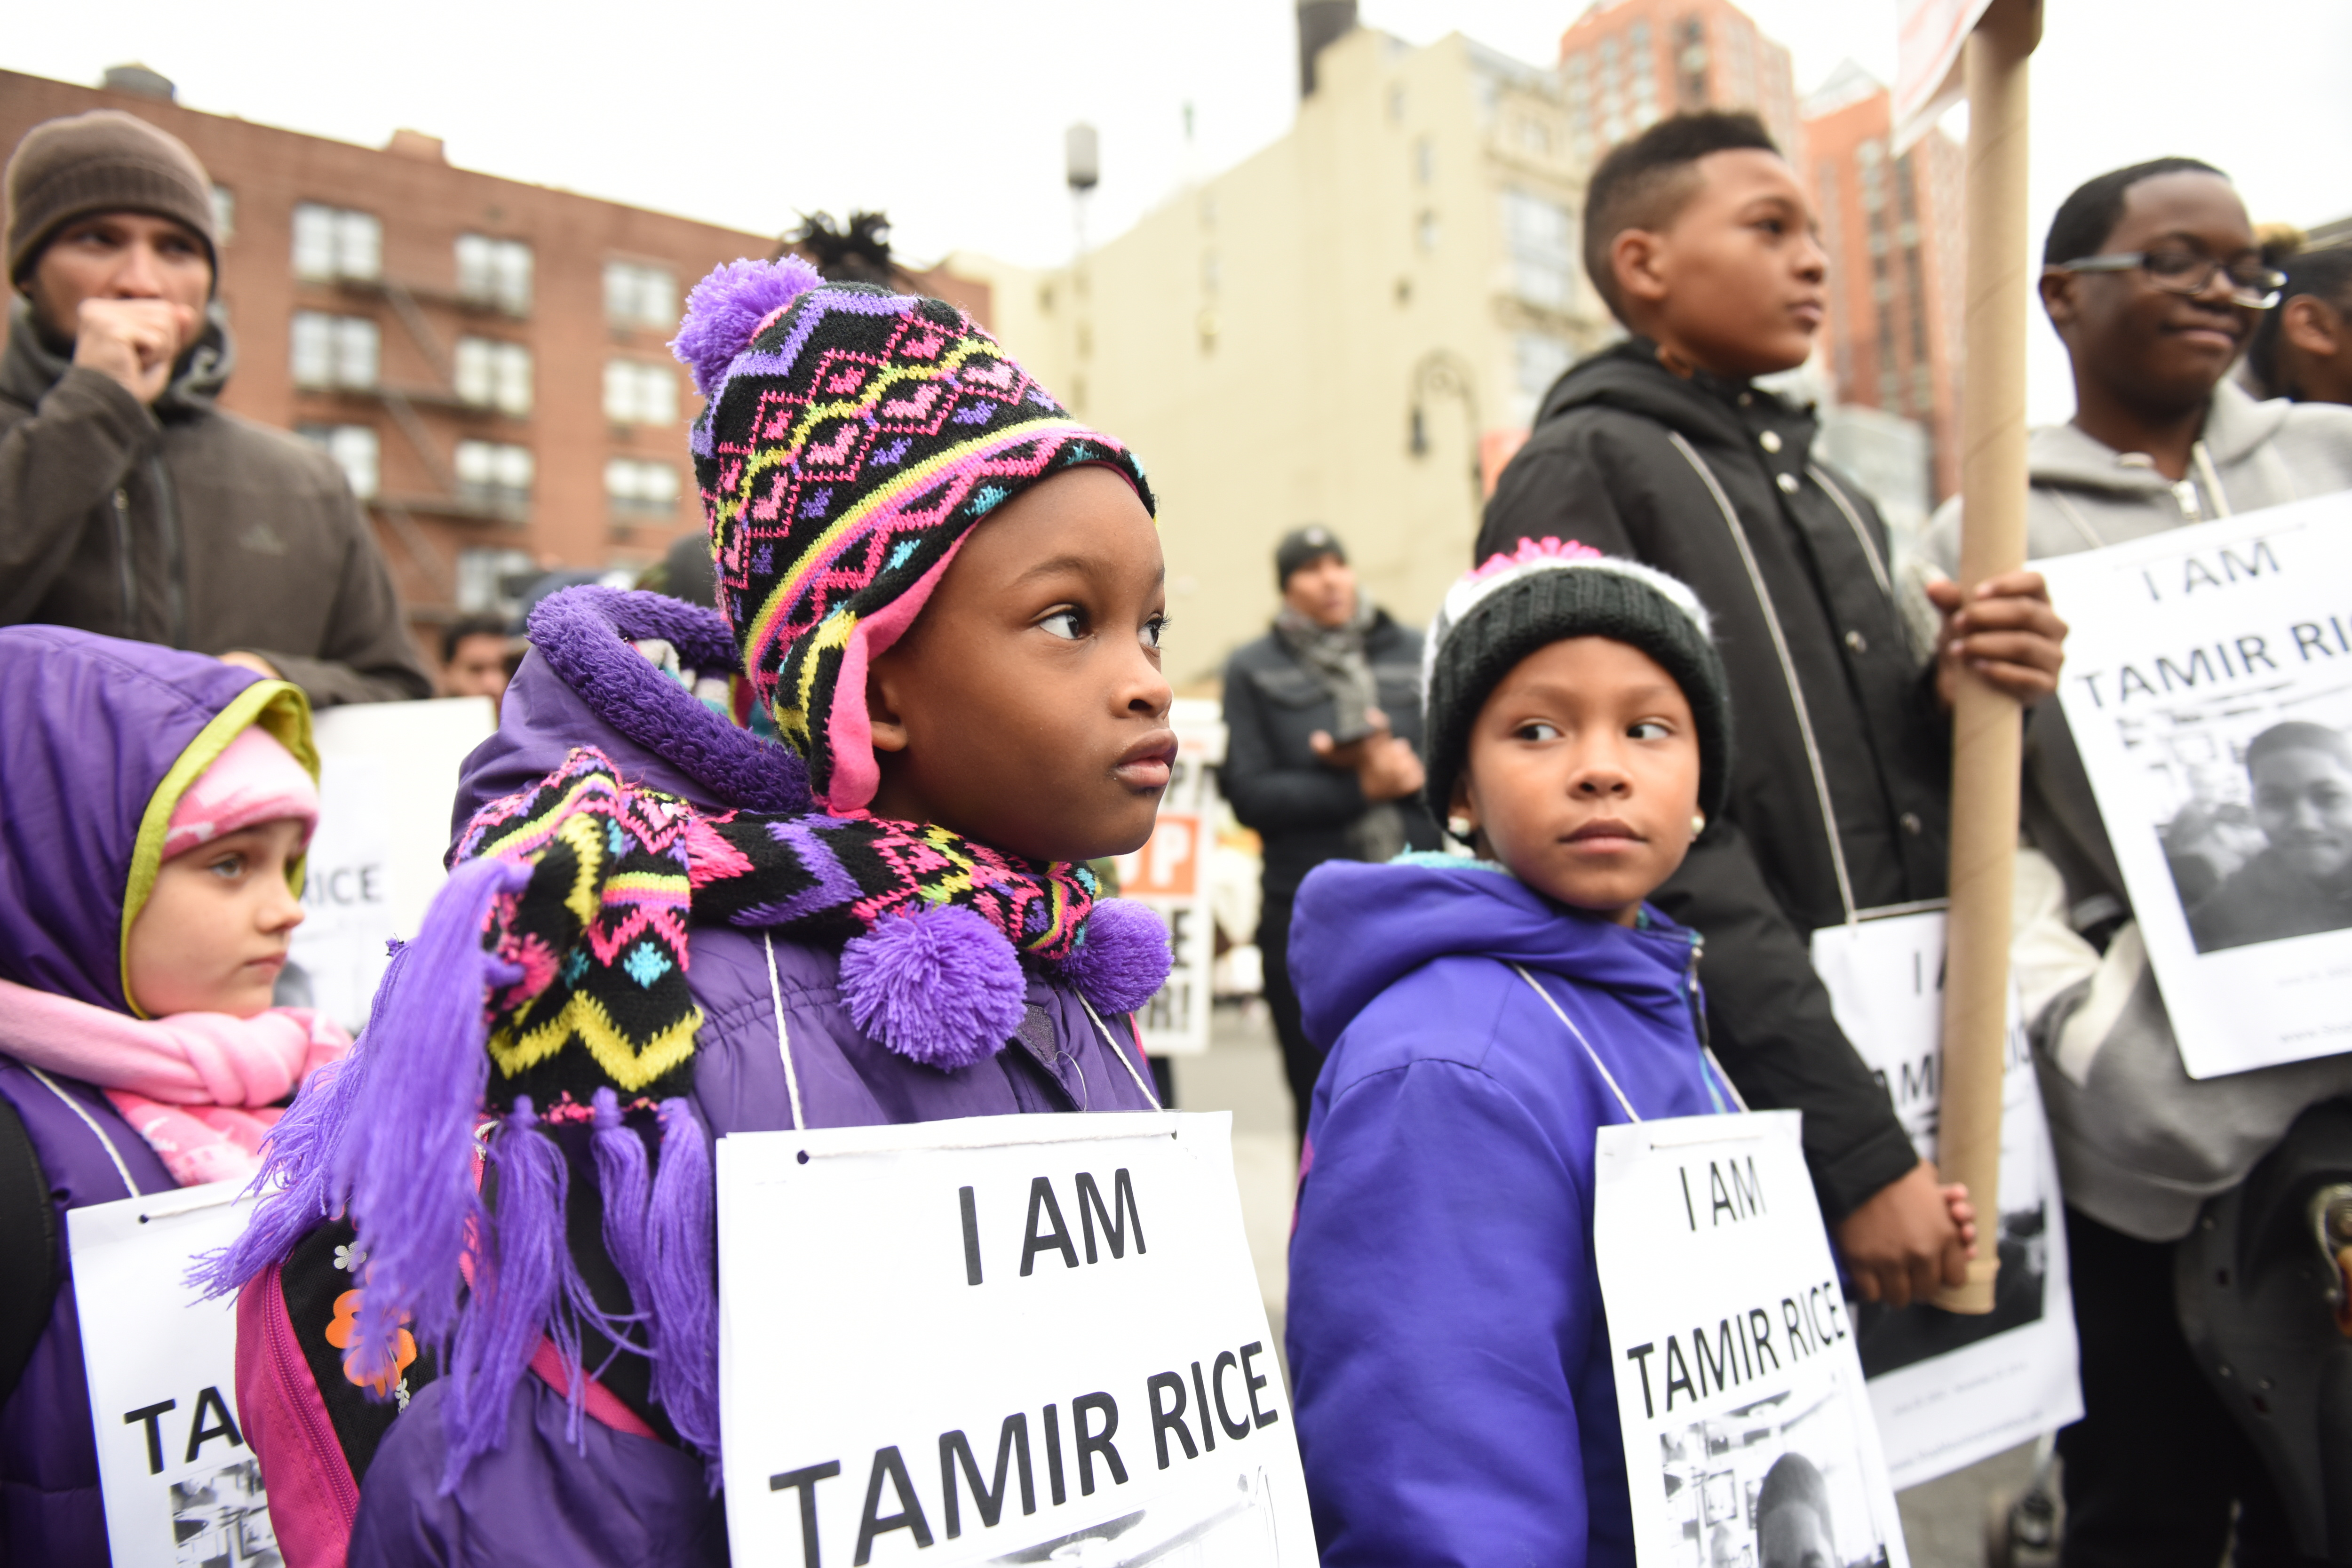 Children wear I Am Tamir Rice signs at a Stop Mass Incarcerations Network sponsored march demanding accountability on the one year anniversary of Tamir Rice's death at the hands of the Cleveland police in New York City on Nov. 22, 2015.